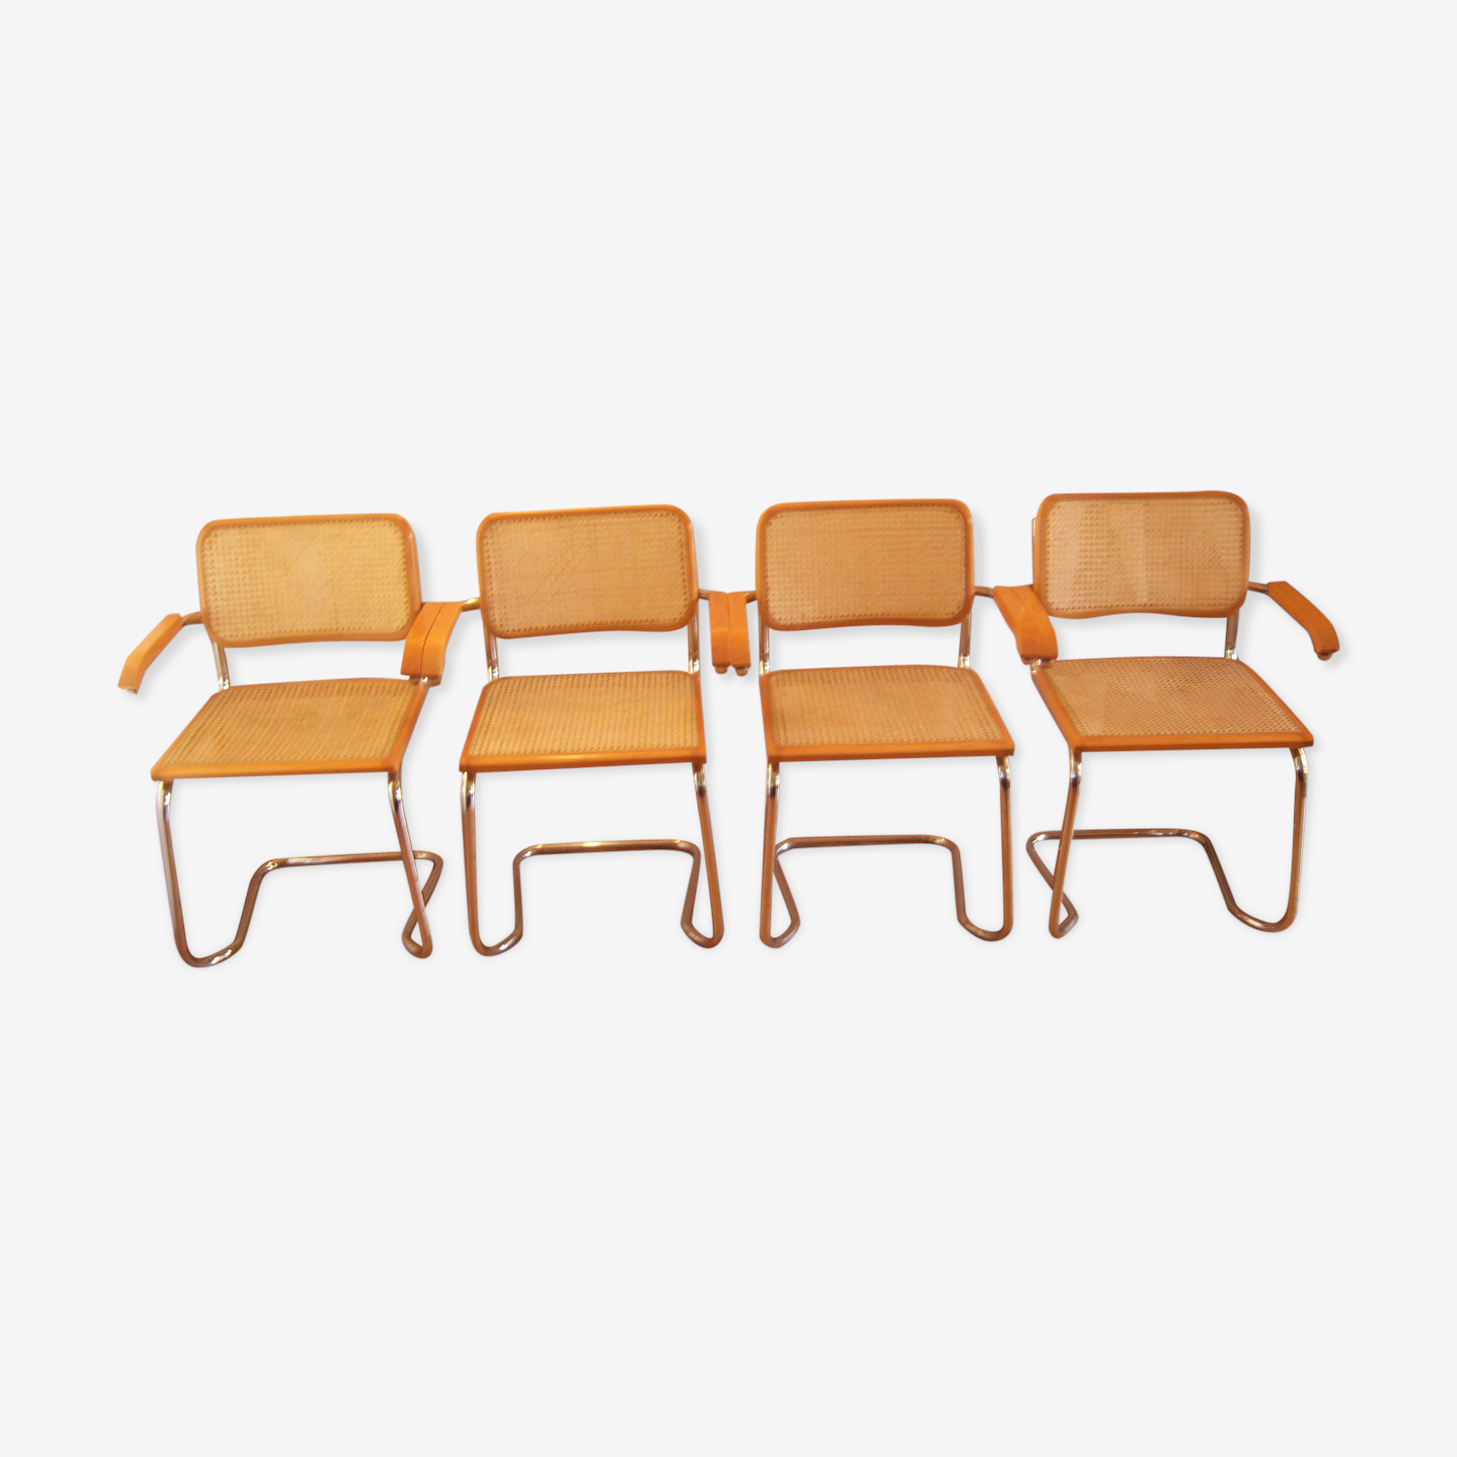 Set of 4 armchairs